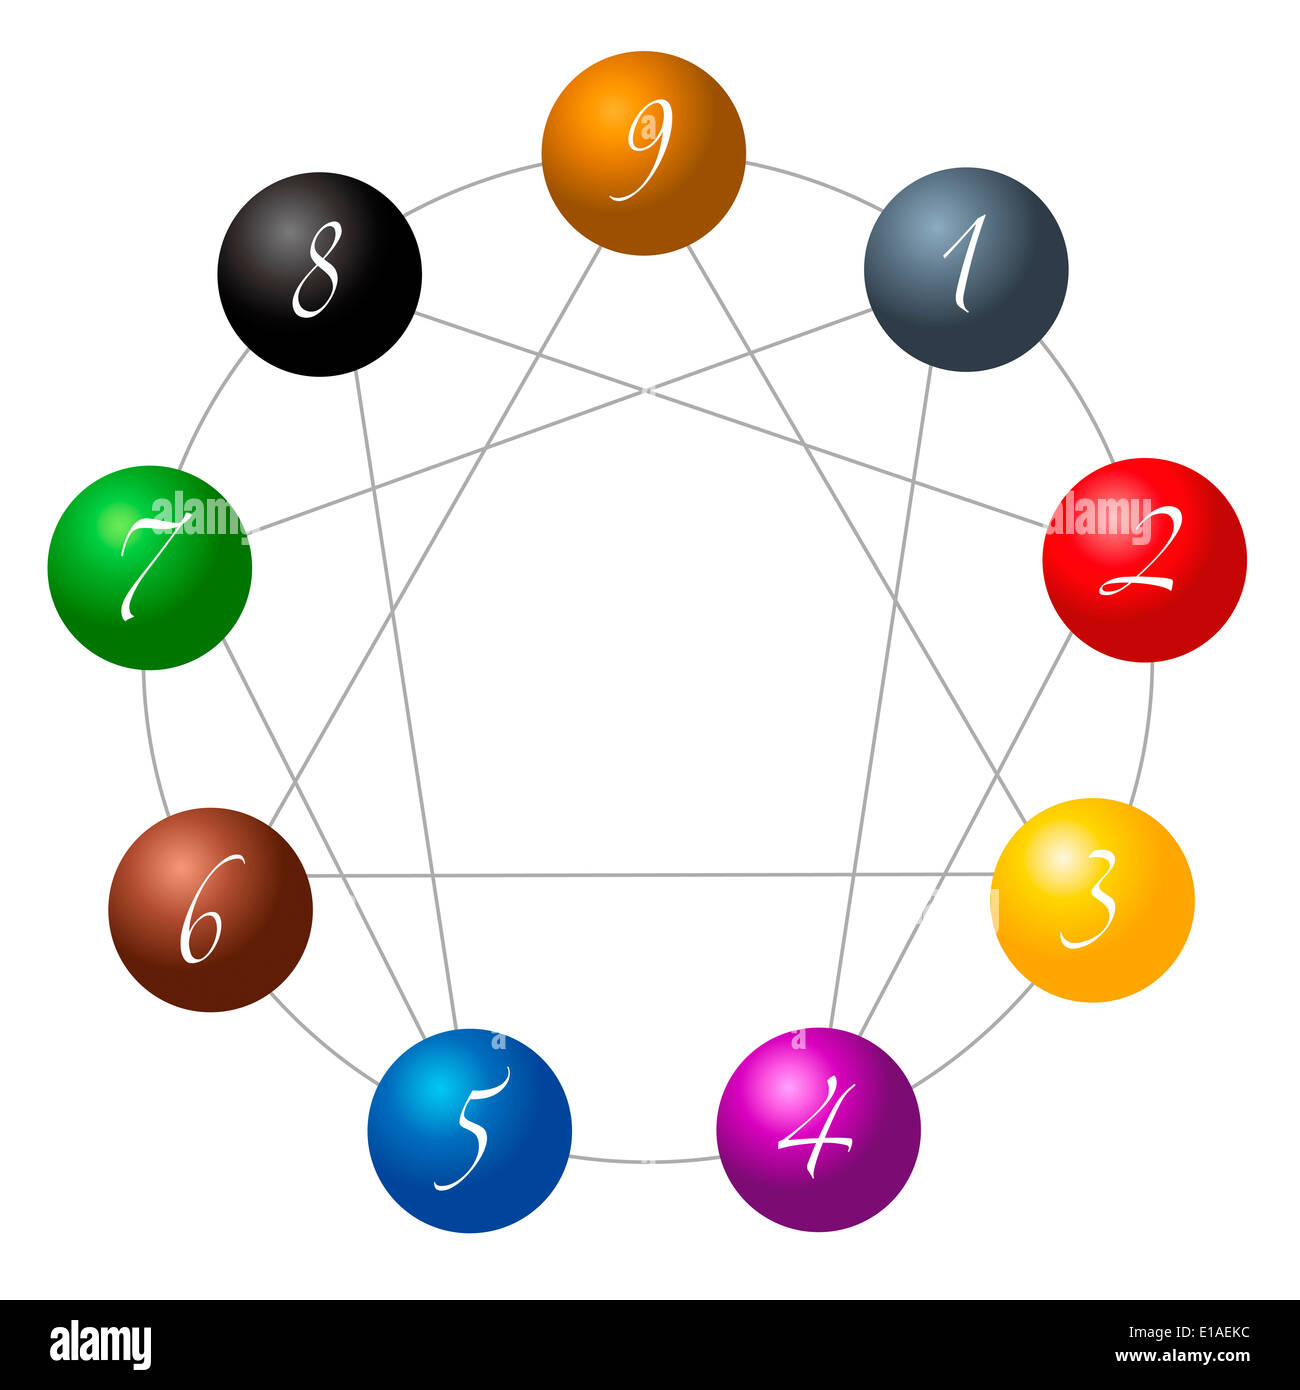 Enneagram figure composed of nine different colored spheres numbered from one to nine concerning the nine types of personality. - Stock Image